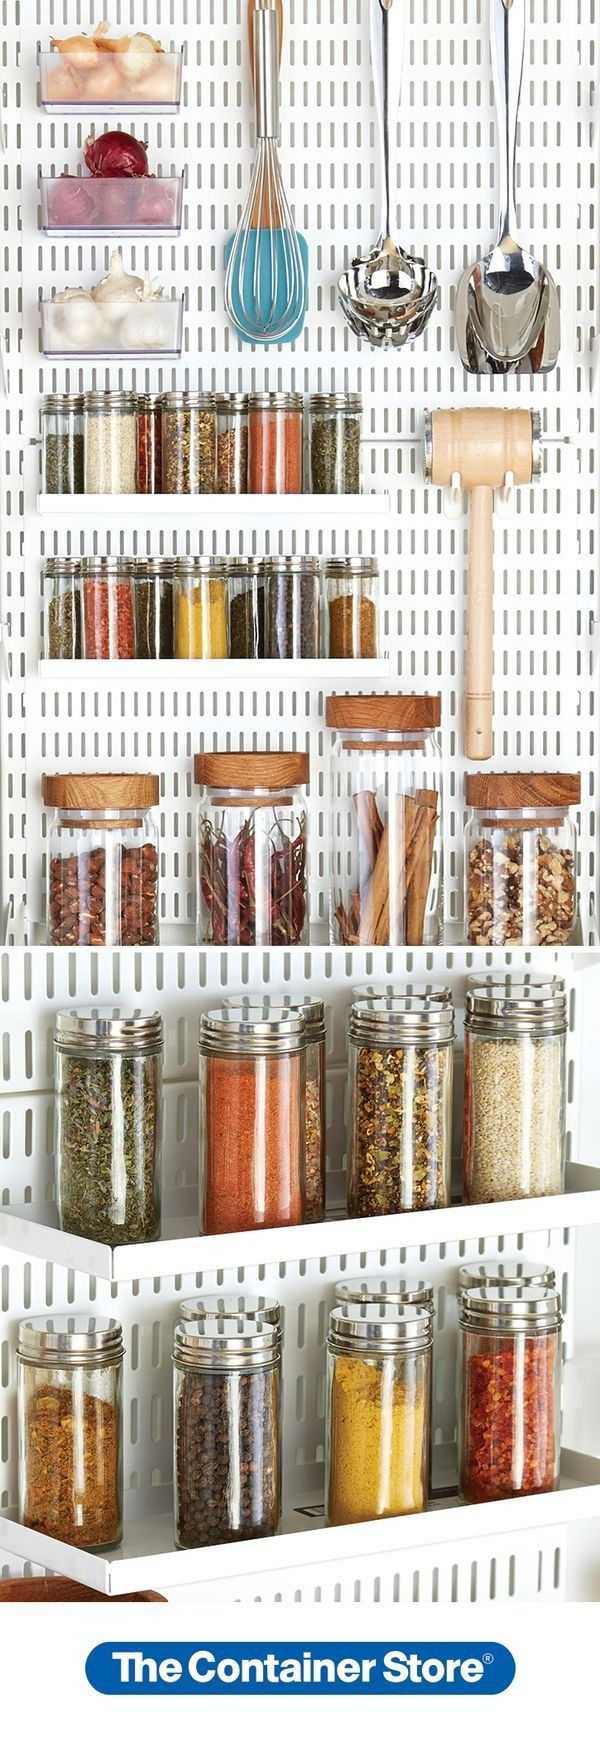 Design Elfa Pantry 55 best elfa pantry images on pinterest container store custom we used our utility boards in the to organize